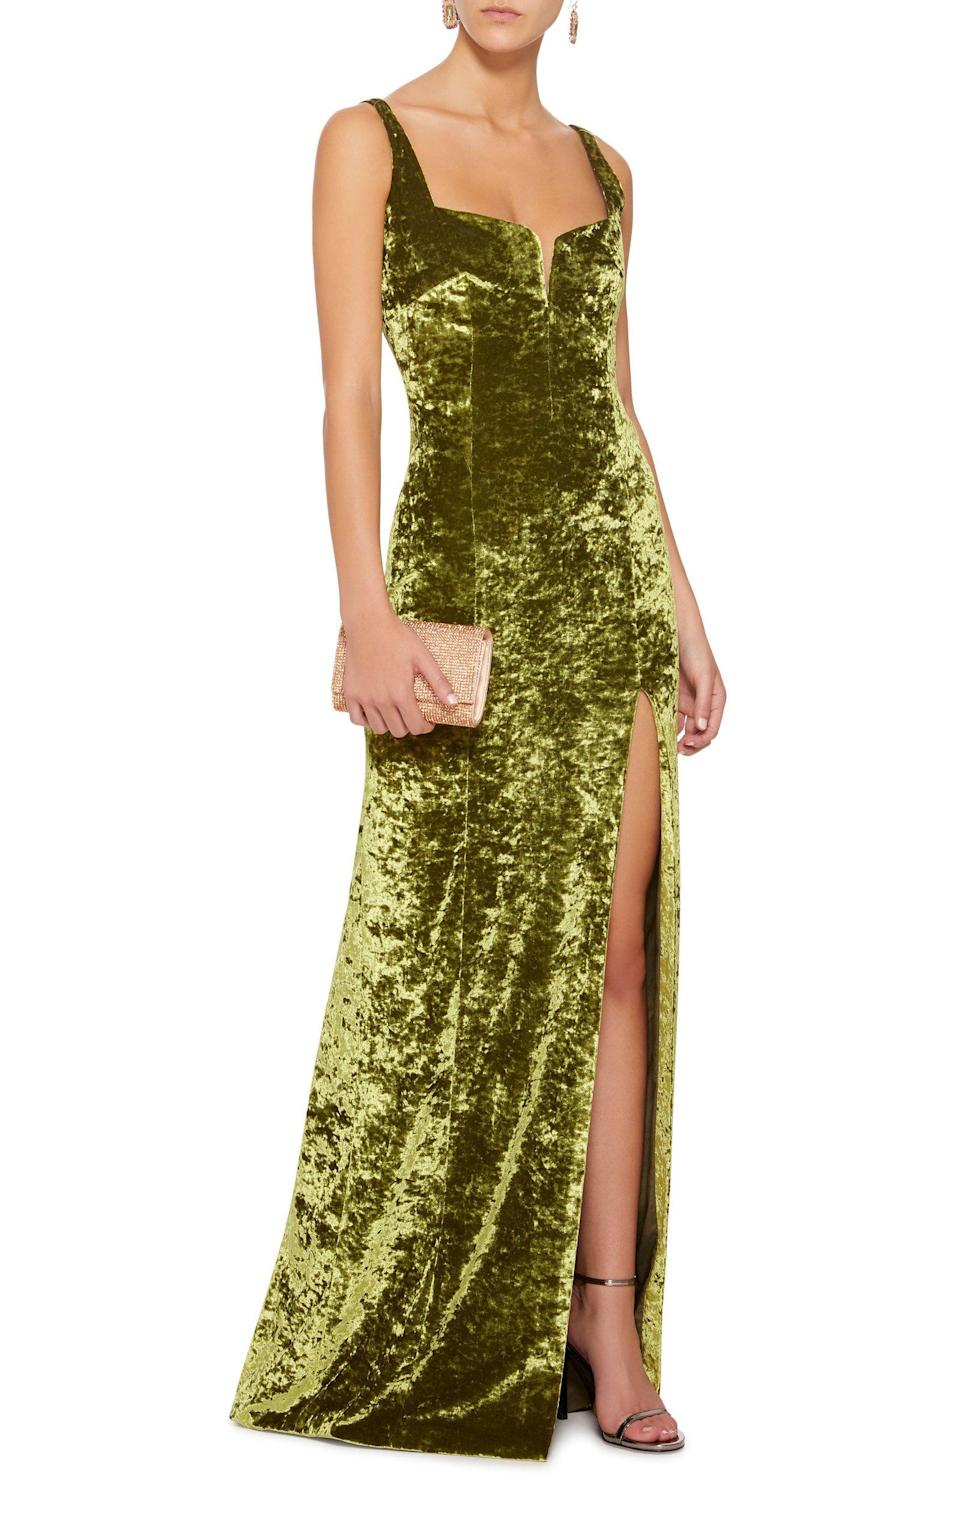 Dream wedding guest dress right here. Available in sizes 34 to 40.